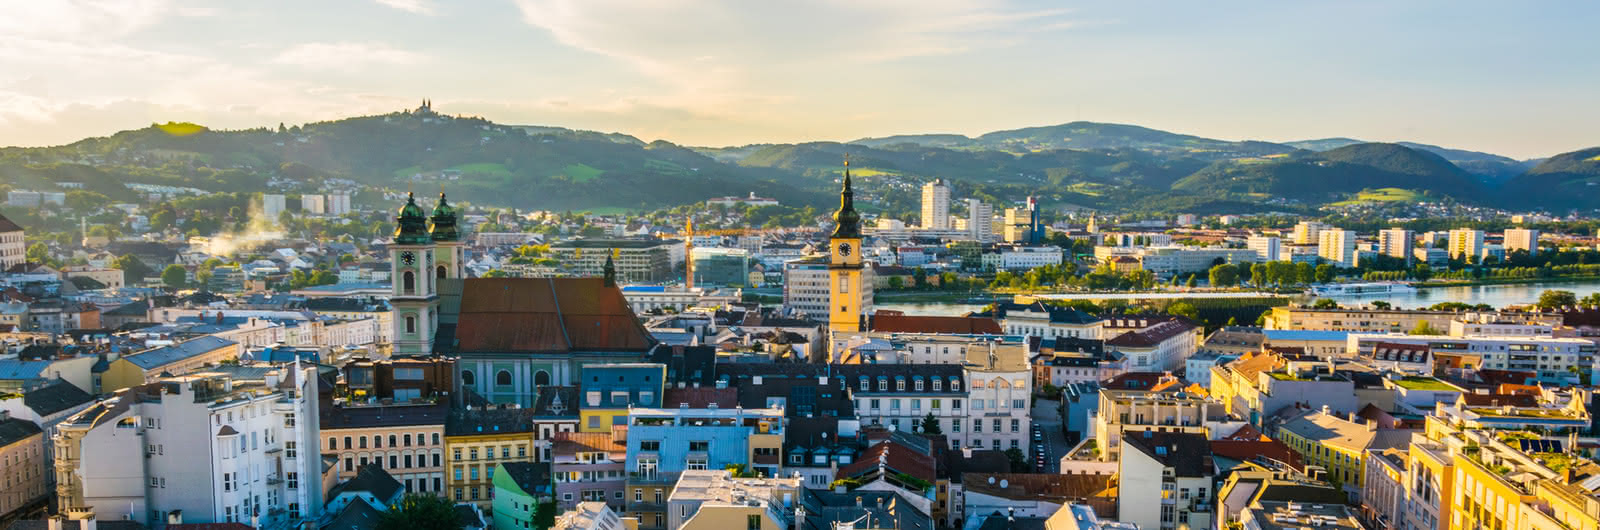 linz city header